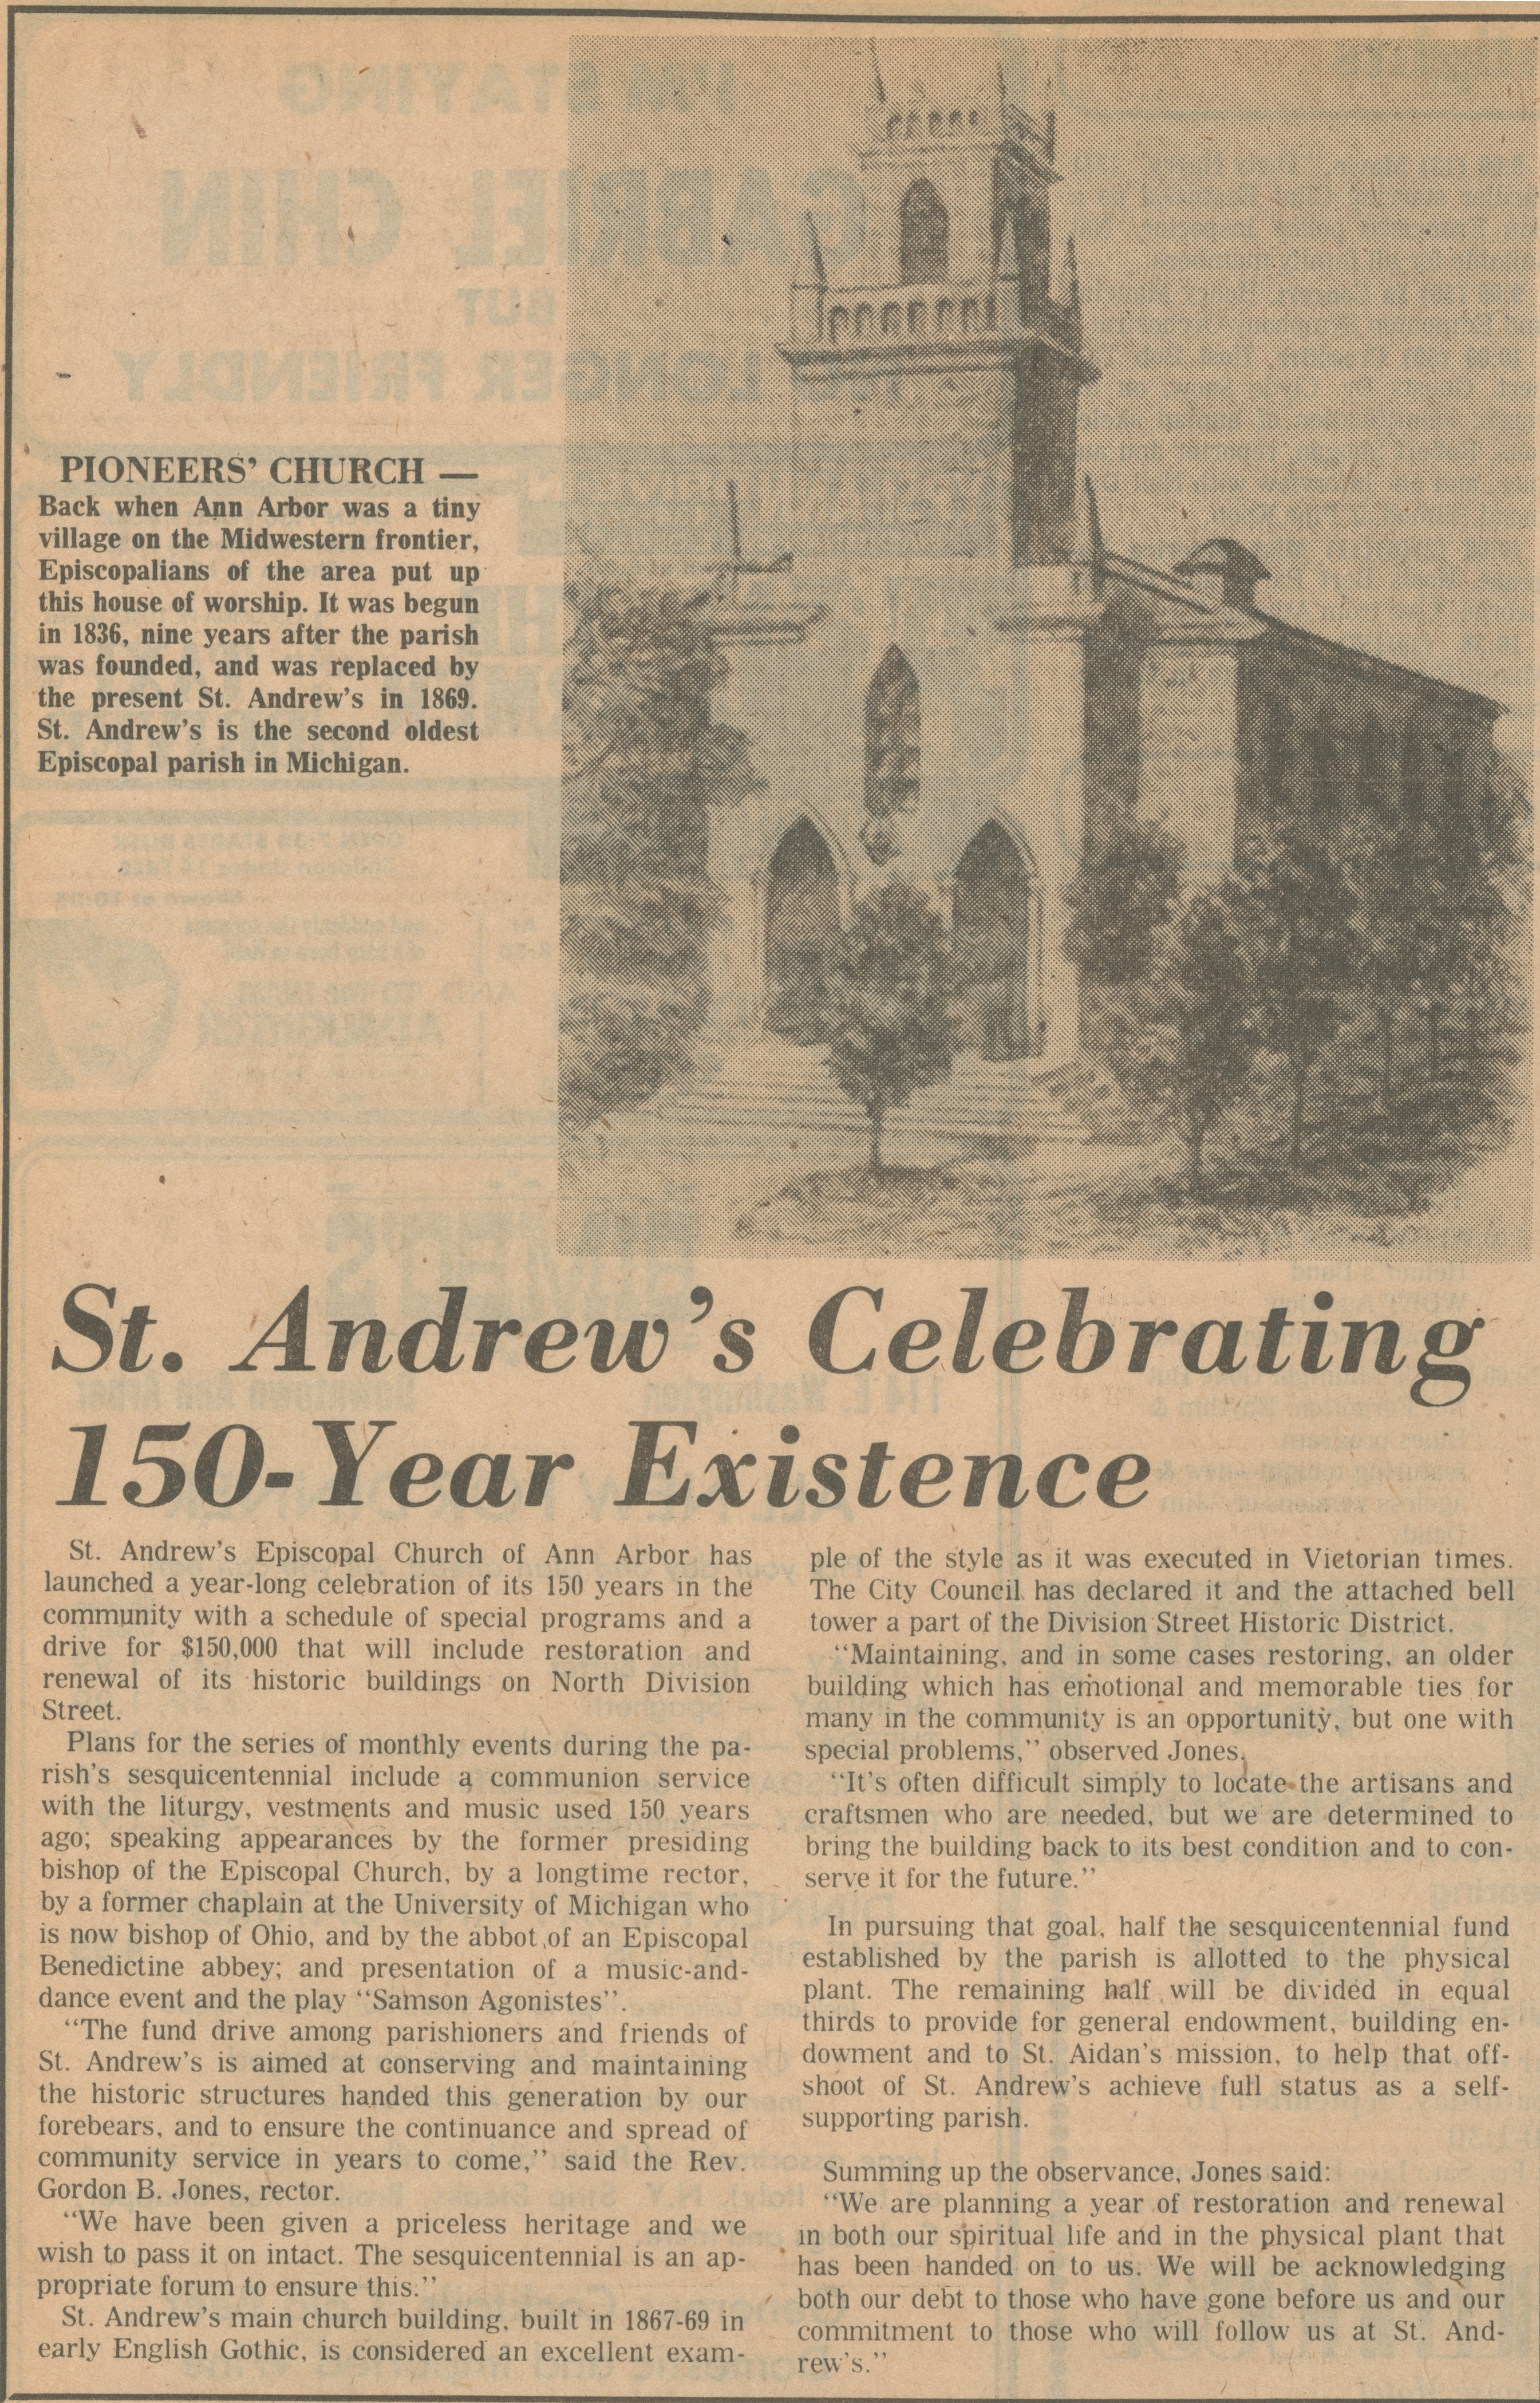 St. Andrew's Celebrating 150-Year Existence image